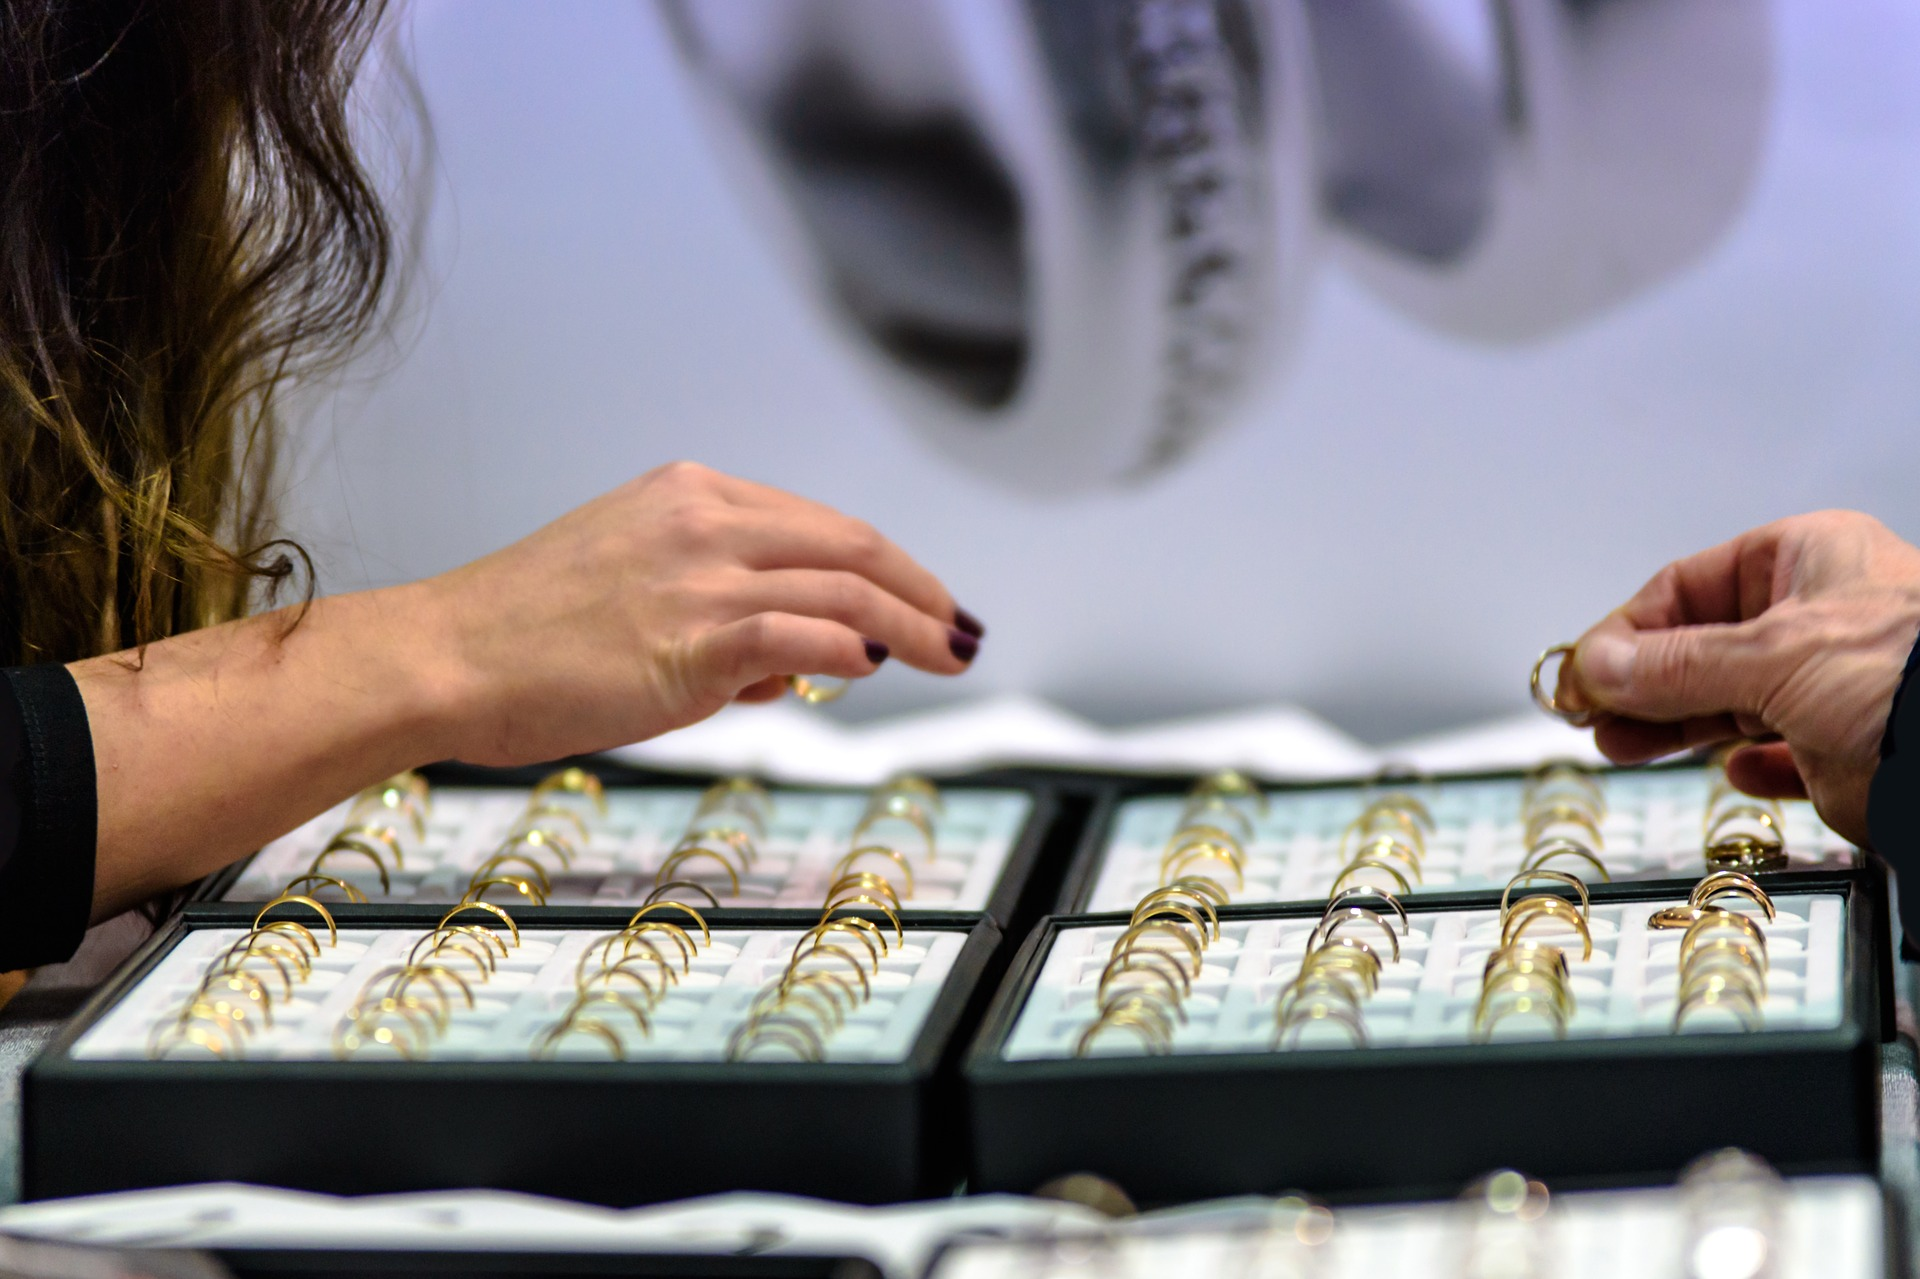 RFID technology minimises the risk of managing and tracking jewellery